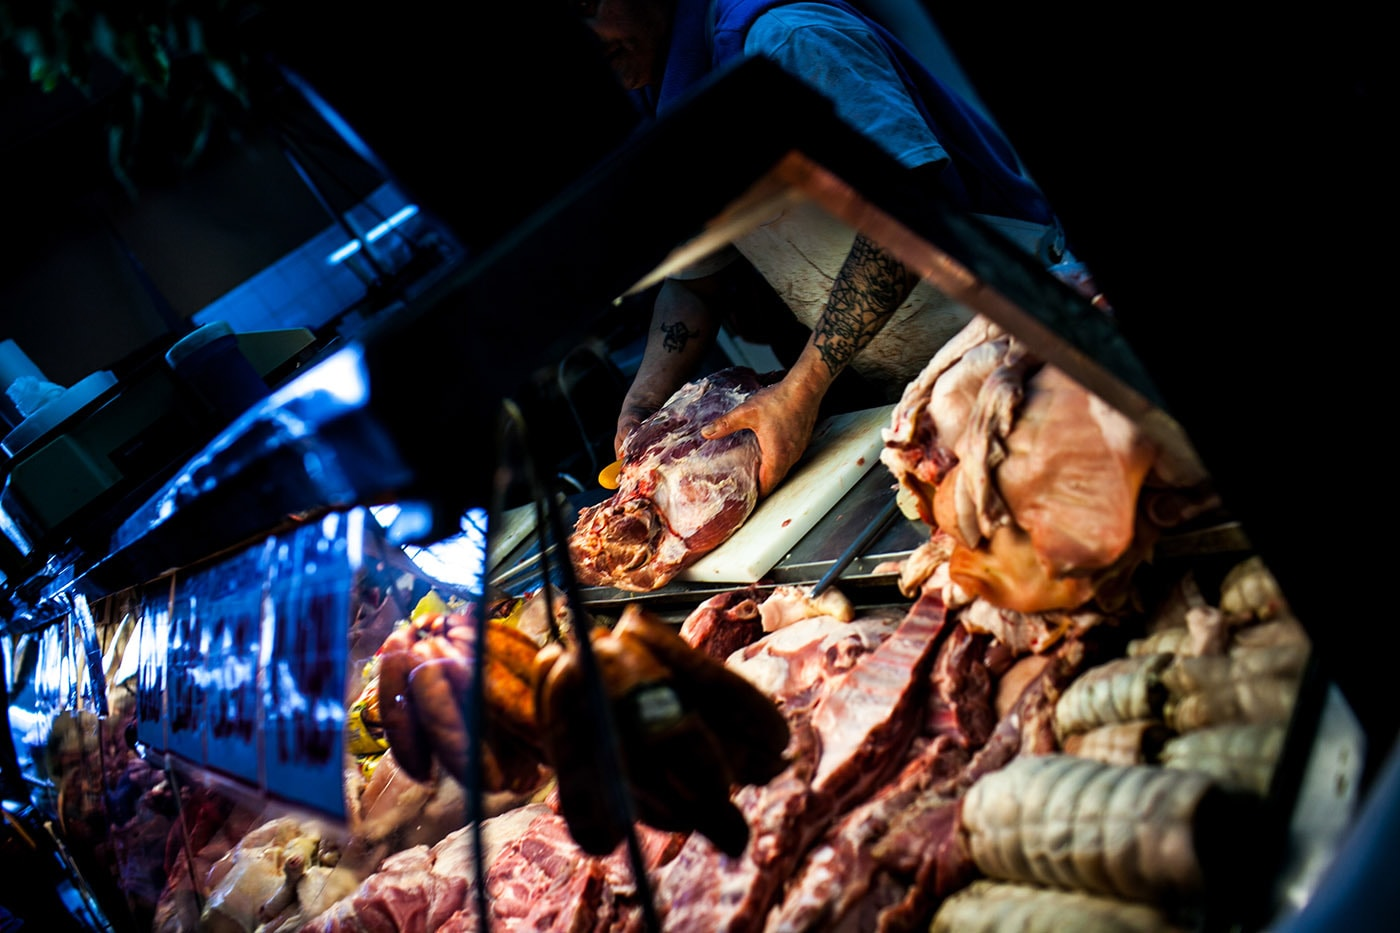 Meat market in Santiago, Chile